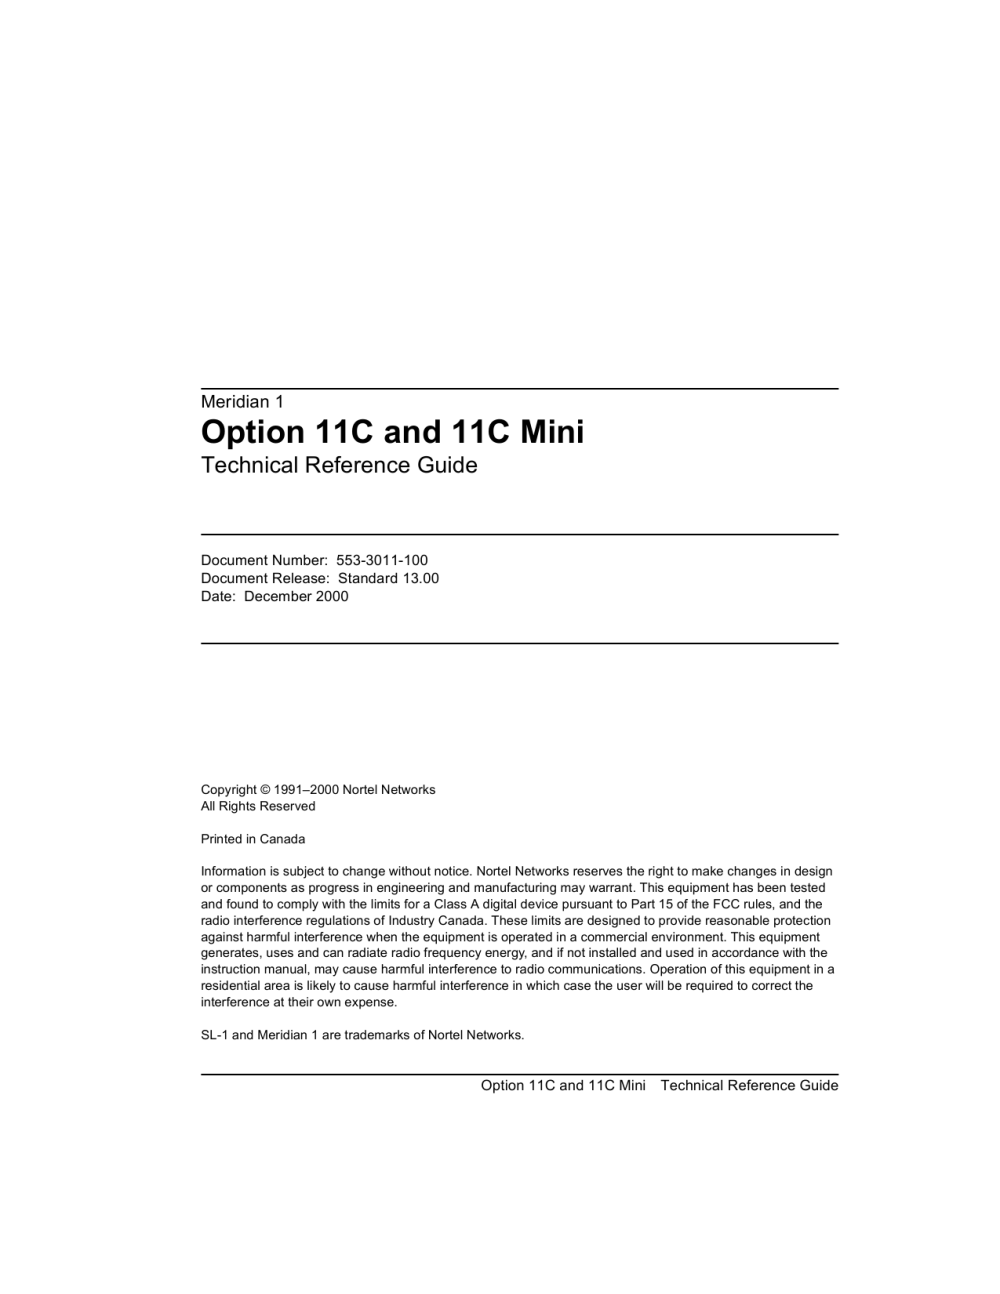 medium resolution of M1 R25 Option 11C and 11C Mini Technical Reference Guide   Manualzz